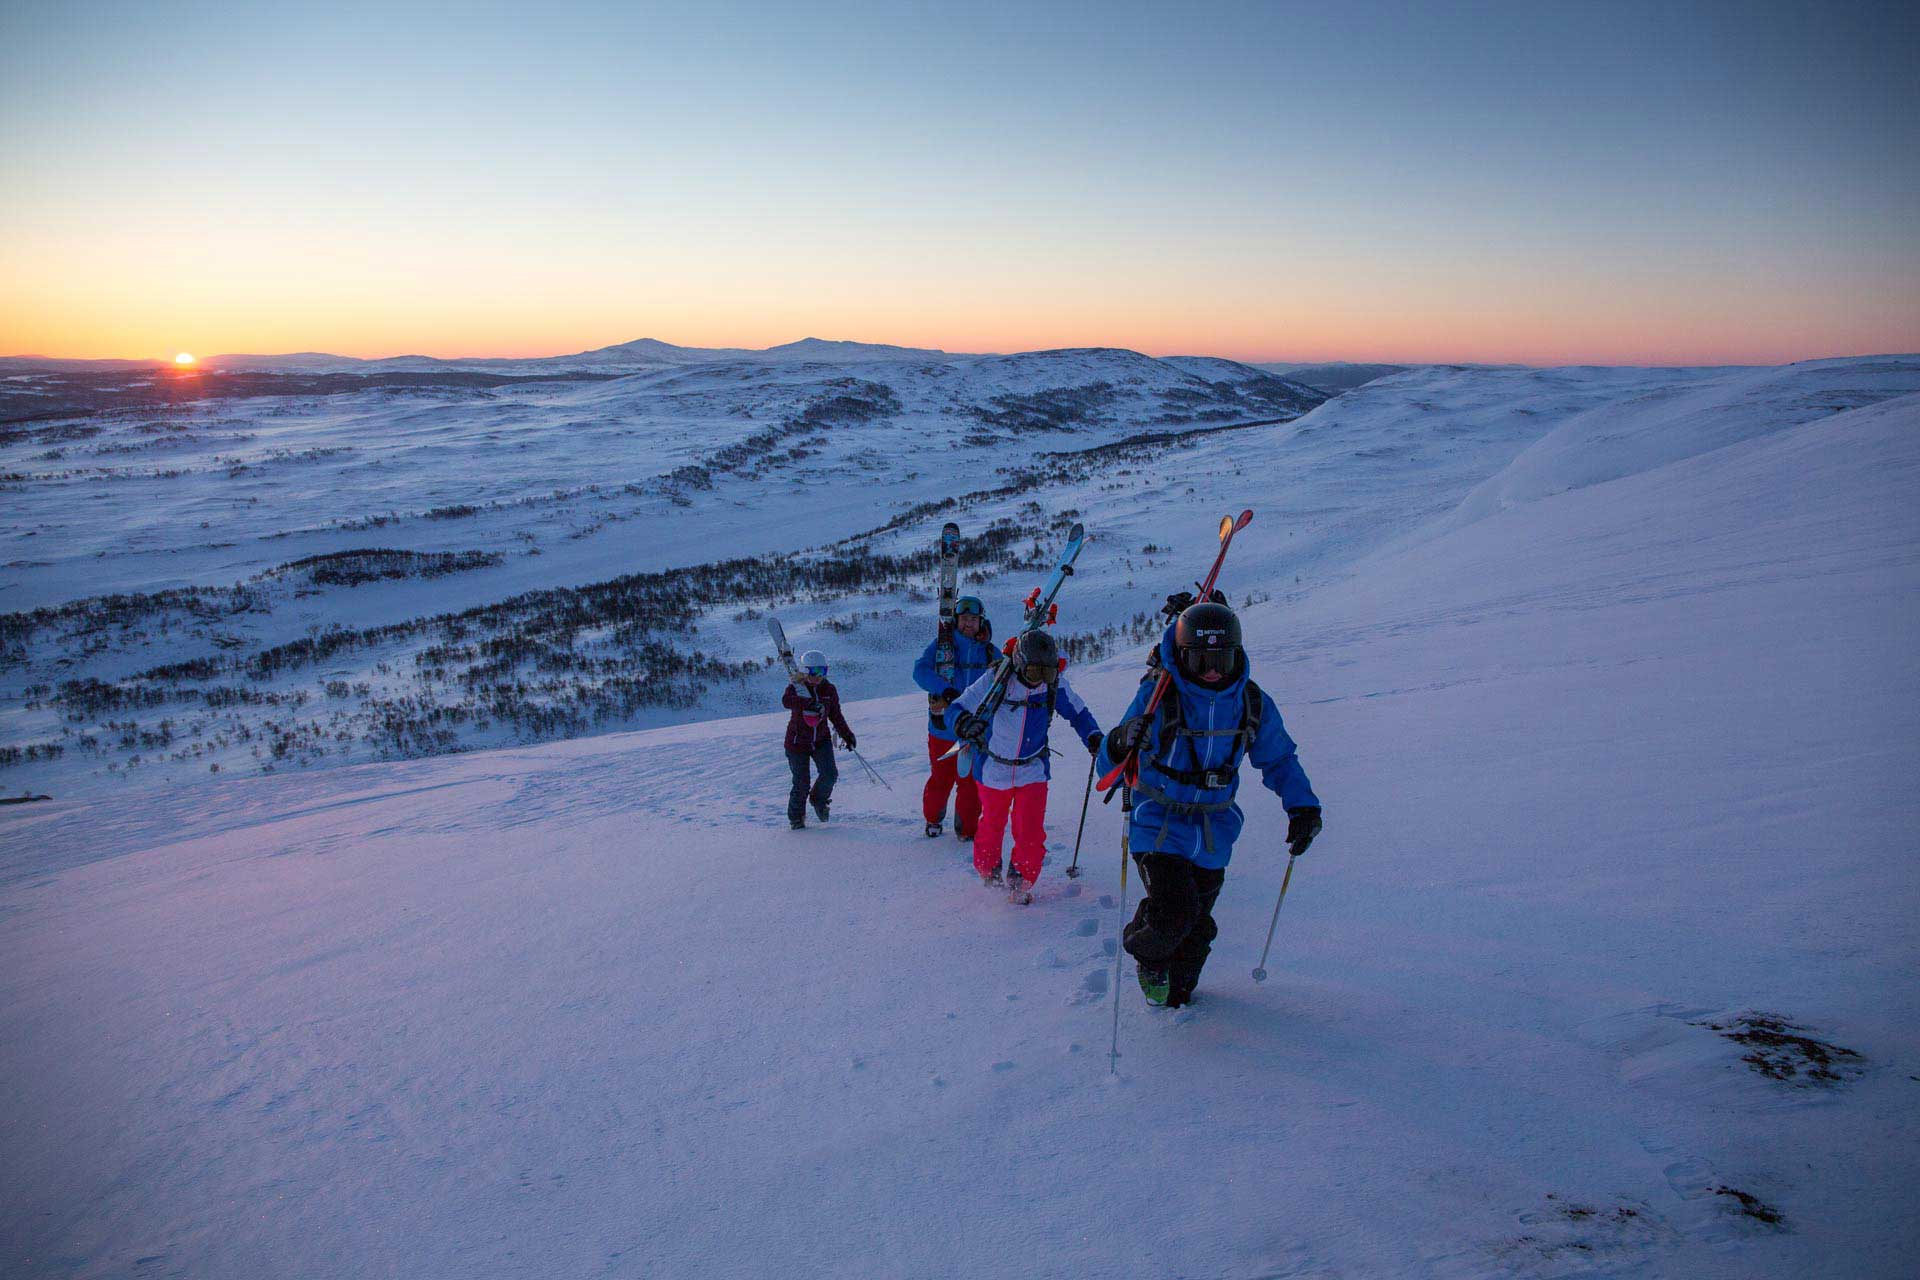 Skiing in Sweden | Photo: Mark Going, Columbia Sportswear